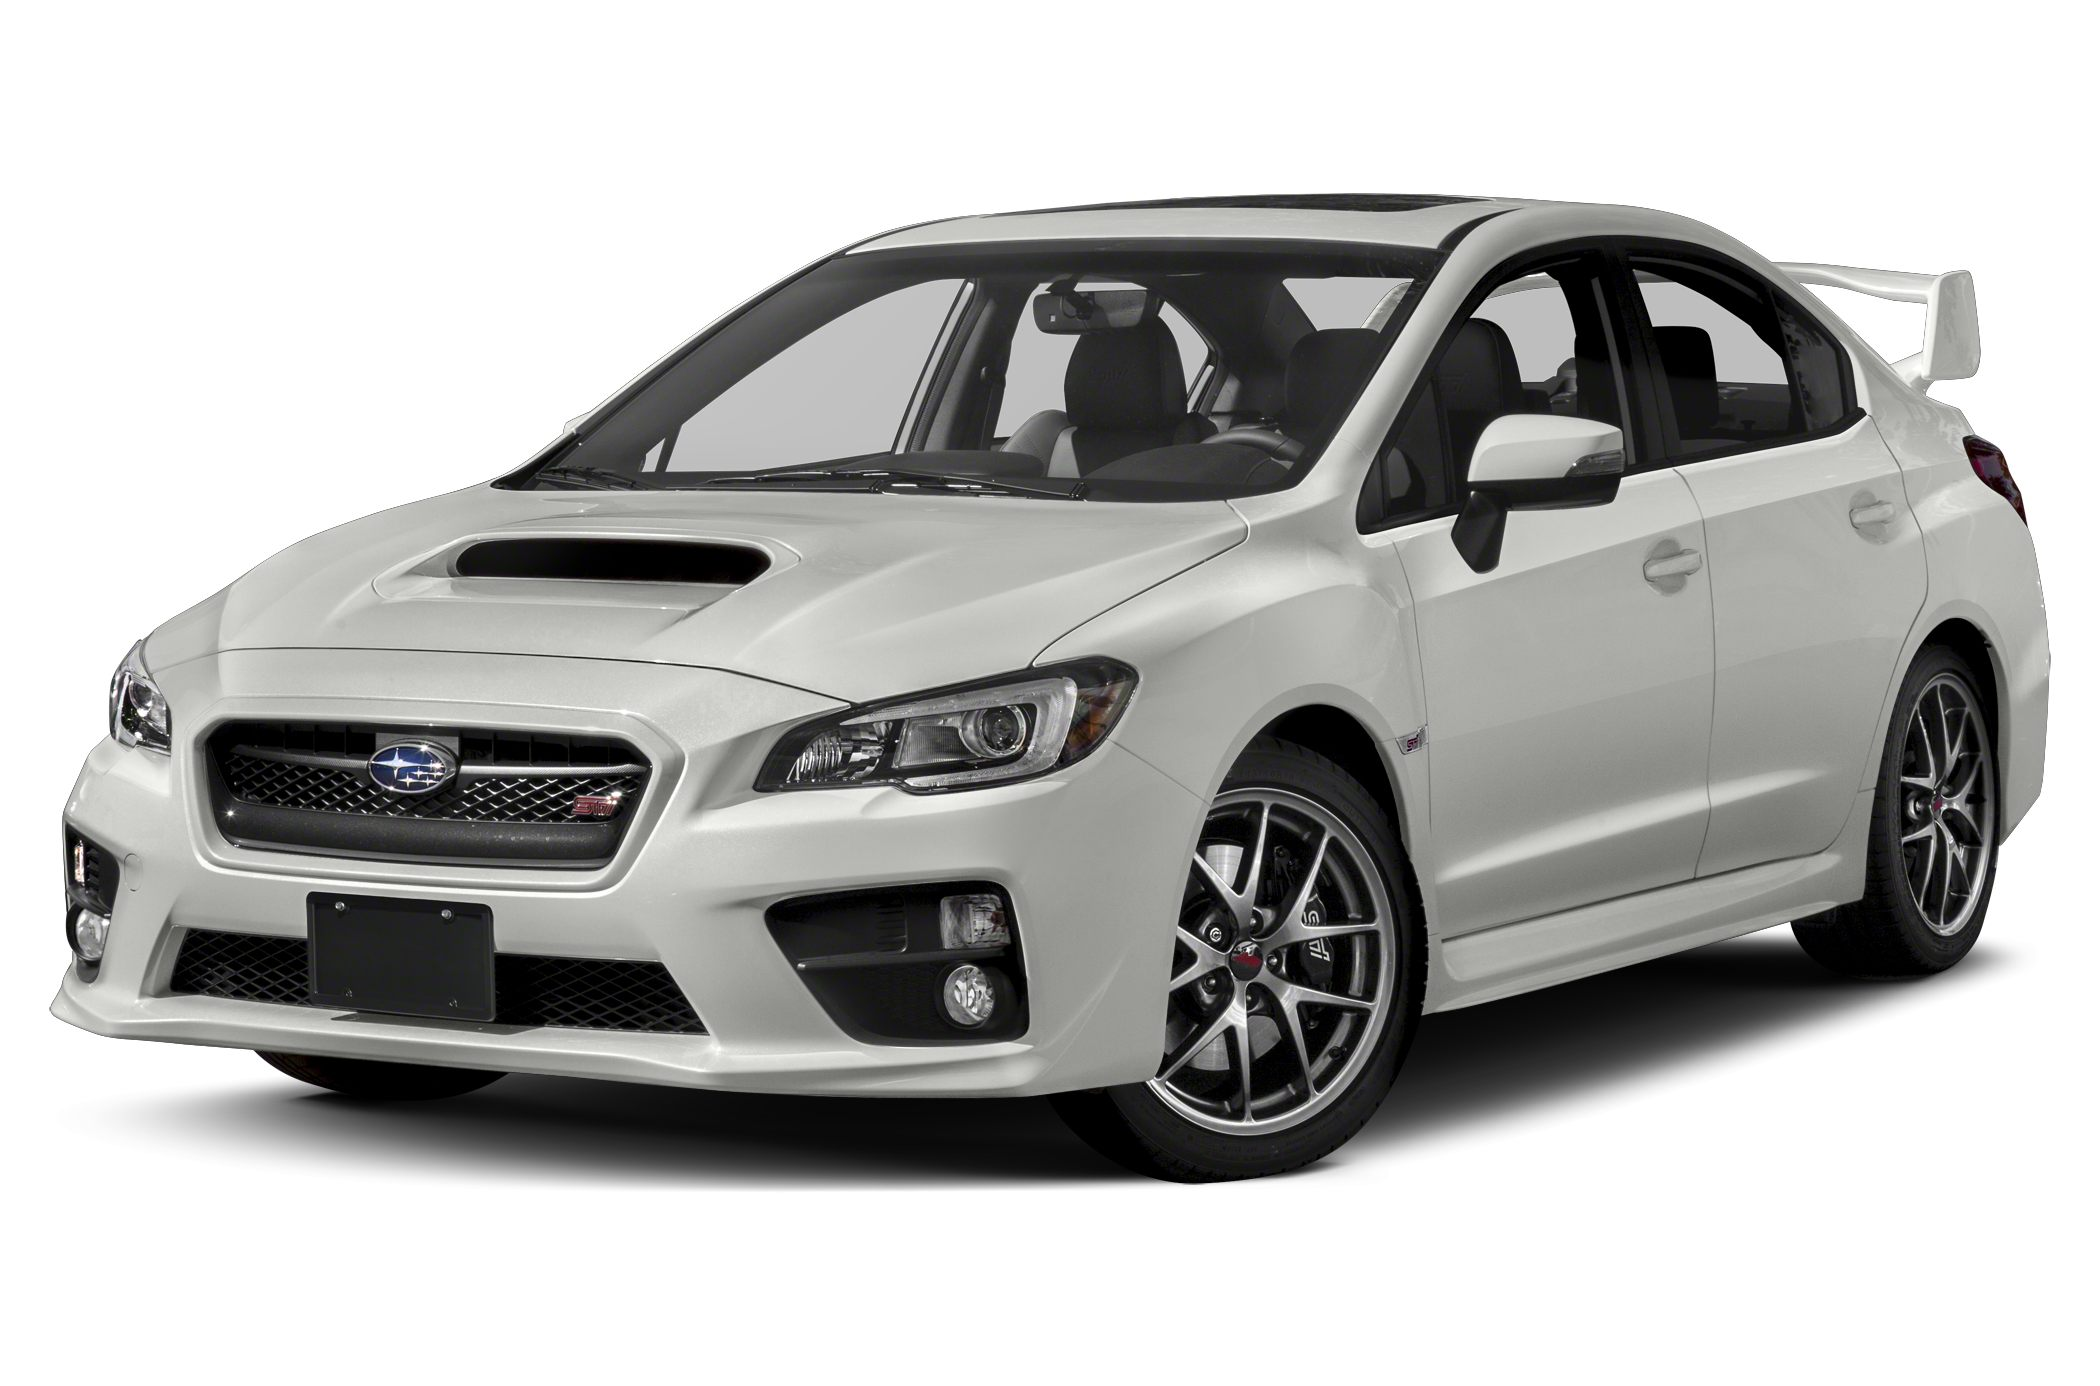 2017 subaru wrx sti white pictures to pin on pinterest pinsdaddy. Black Bedroom Furniture Sets. Home Design Ideas